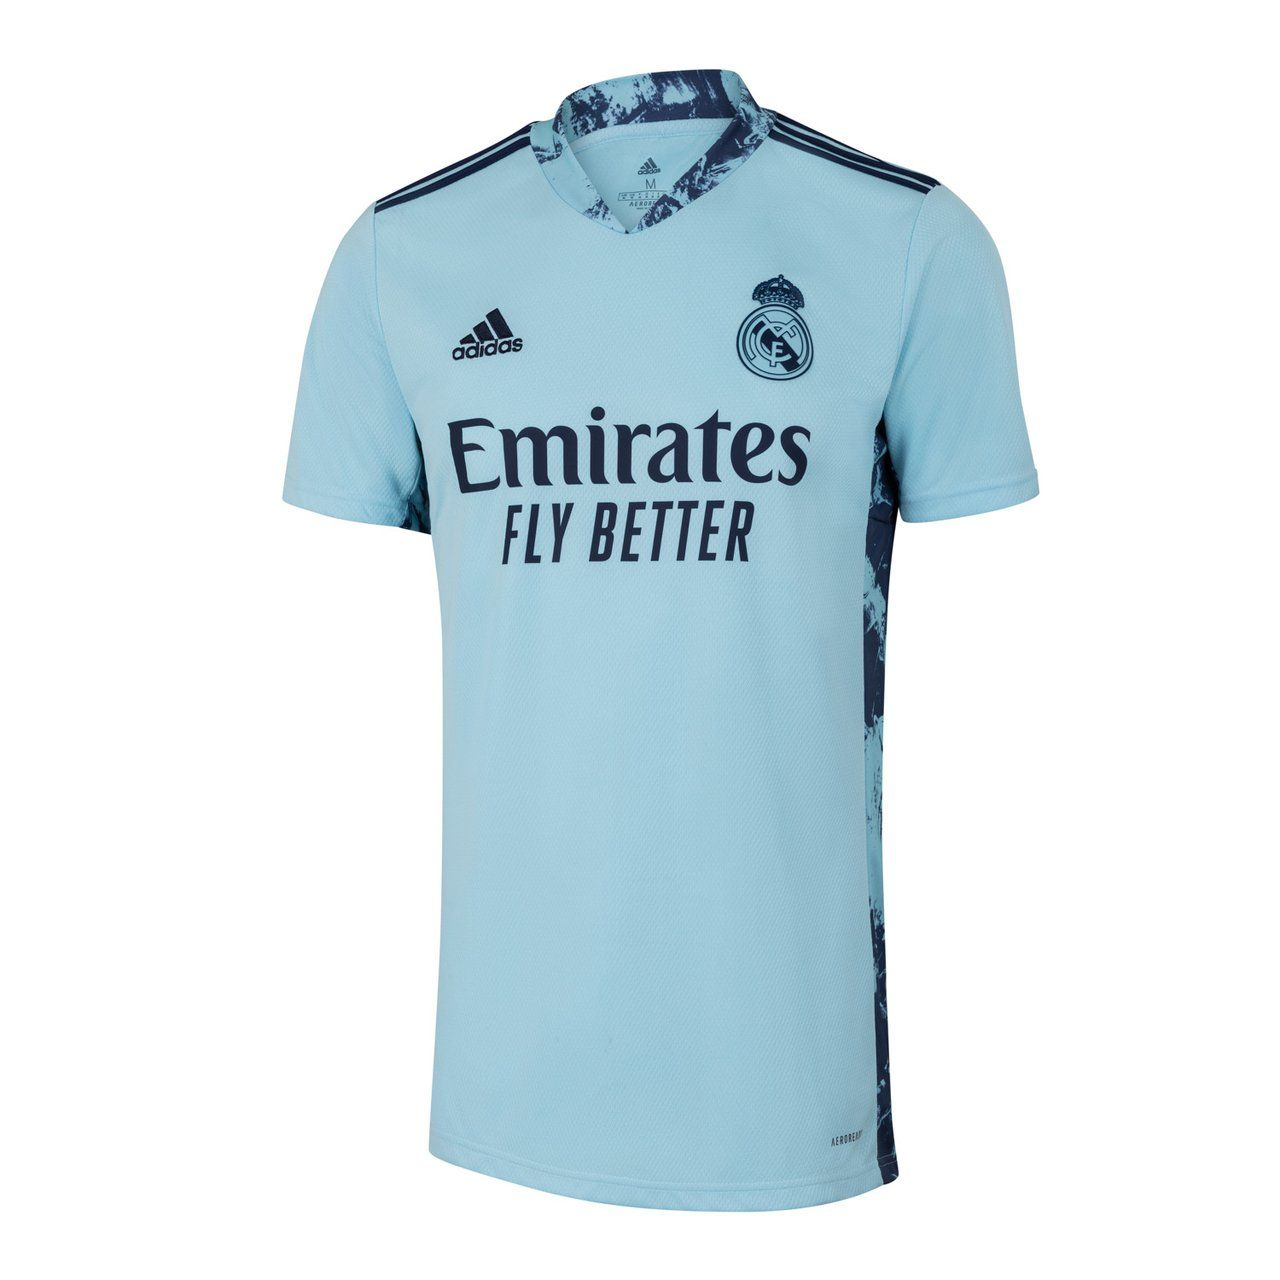 Mens Real Madrid Home Gk Shirt 20 21 Ice Blue In 2020 Real Madrid Madrid Mens Tops